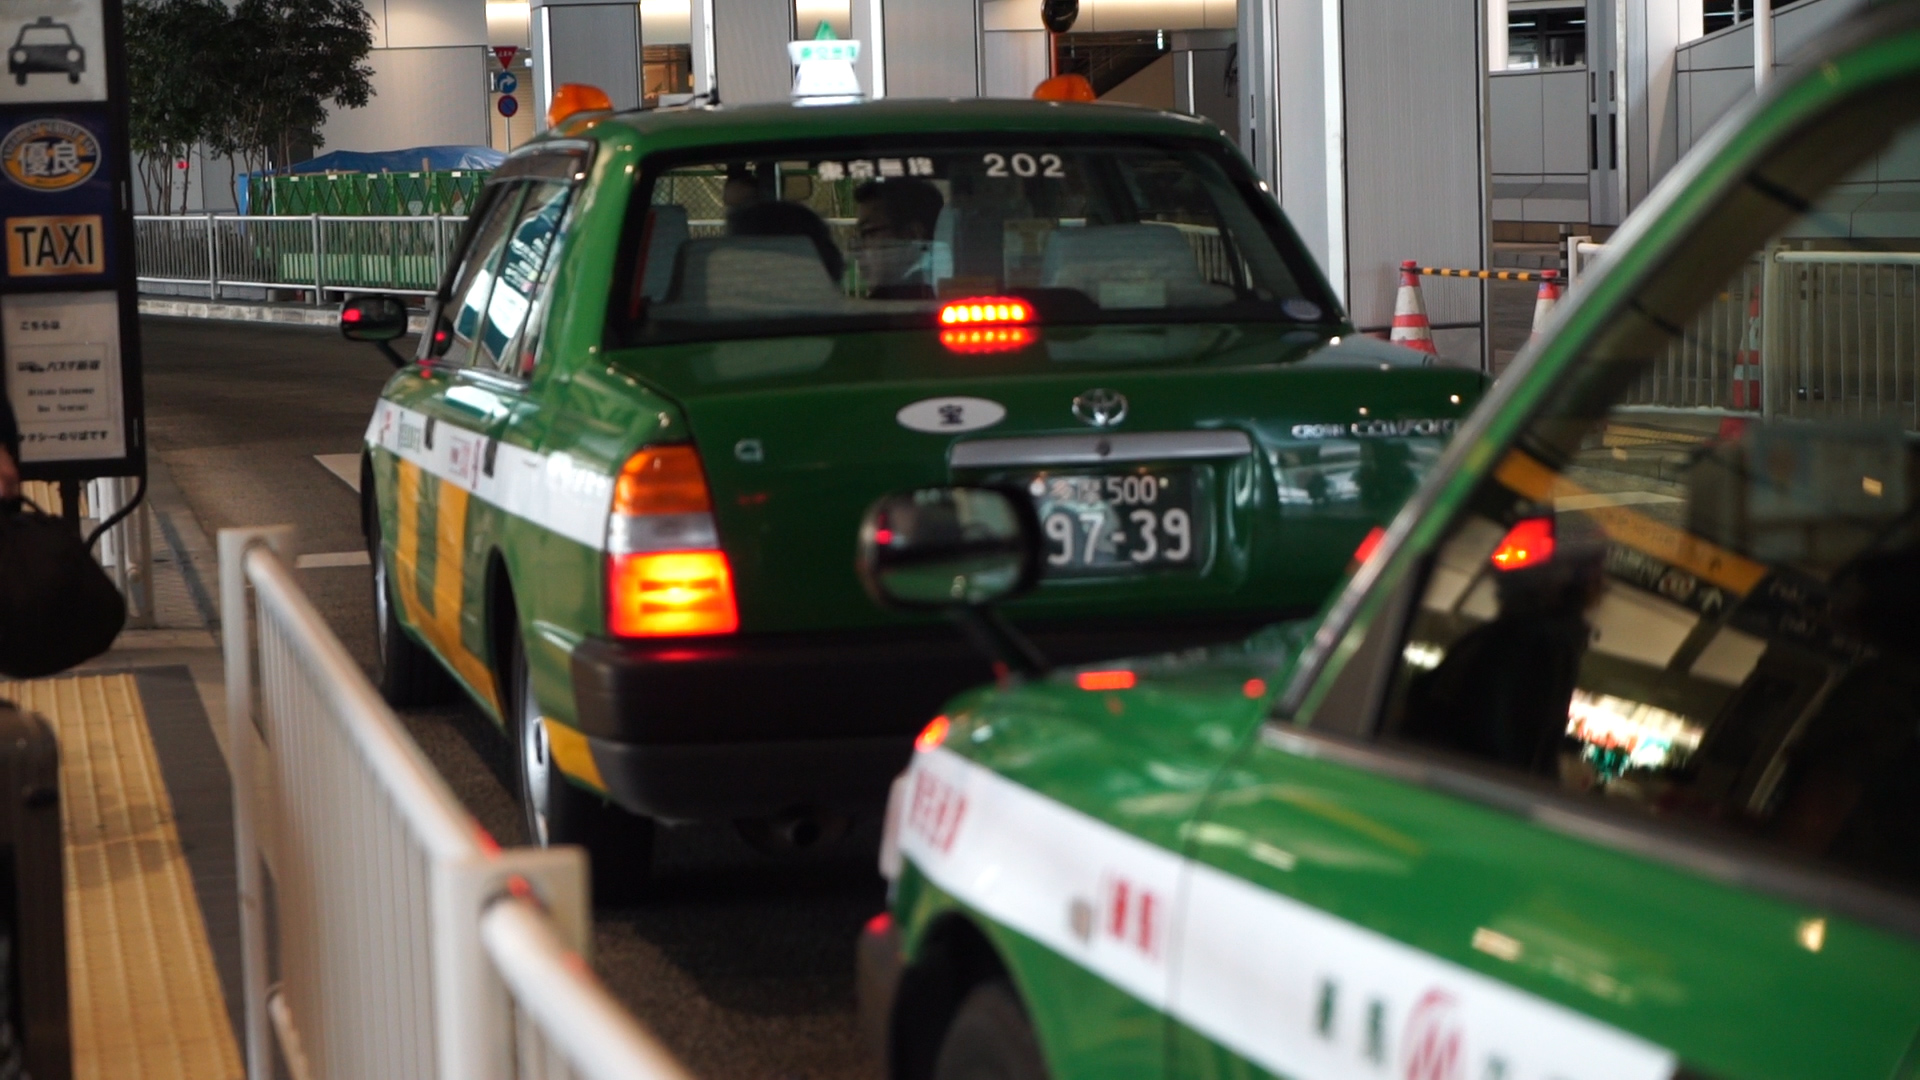 Taxi rank in Tokyo